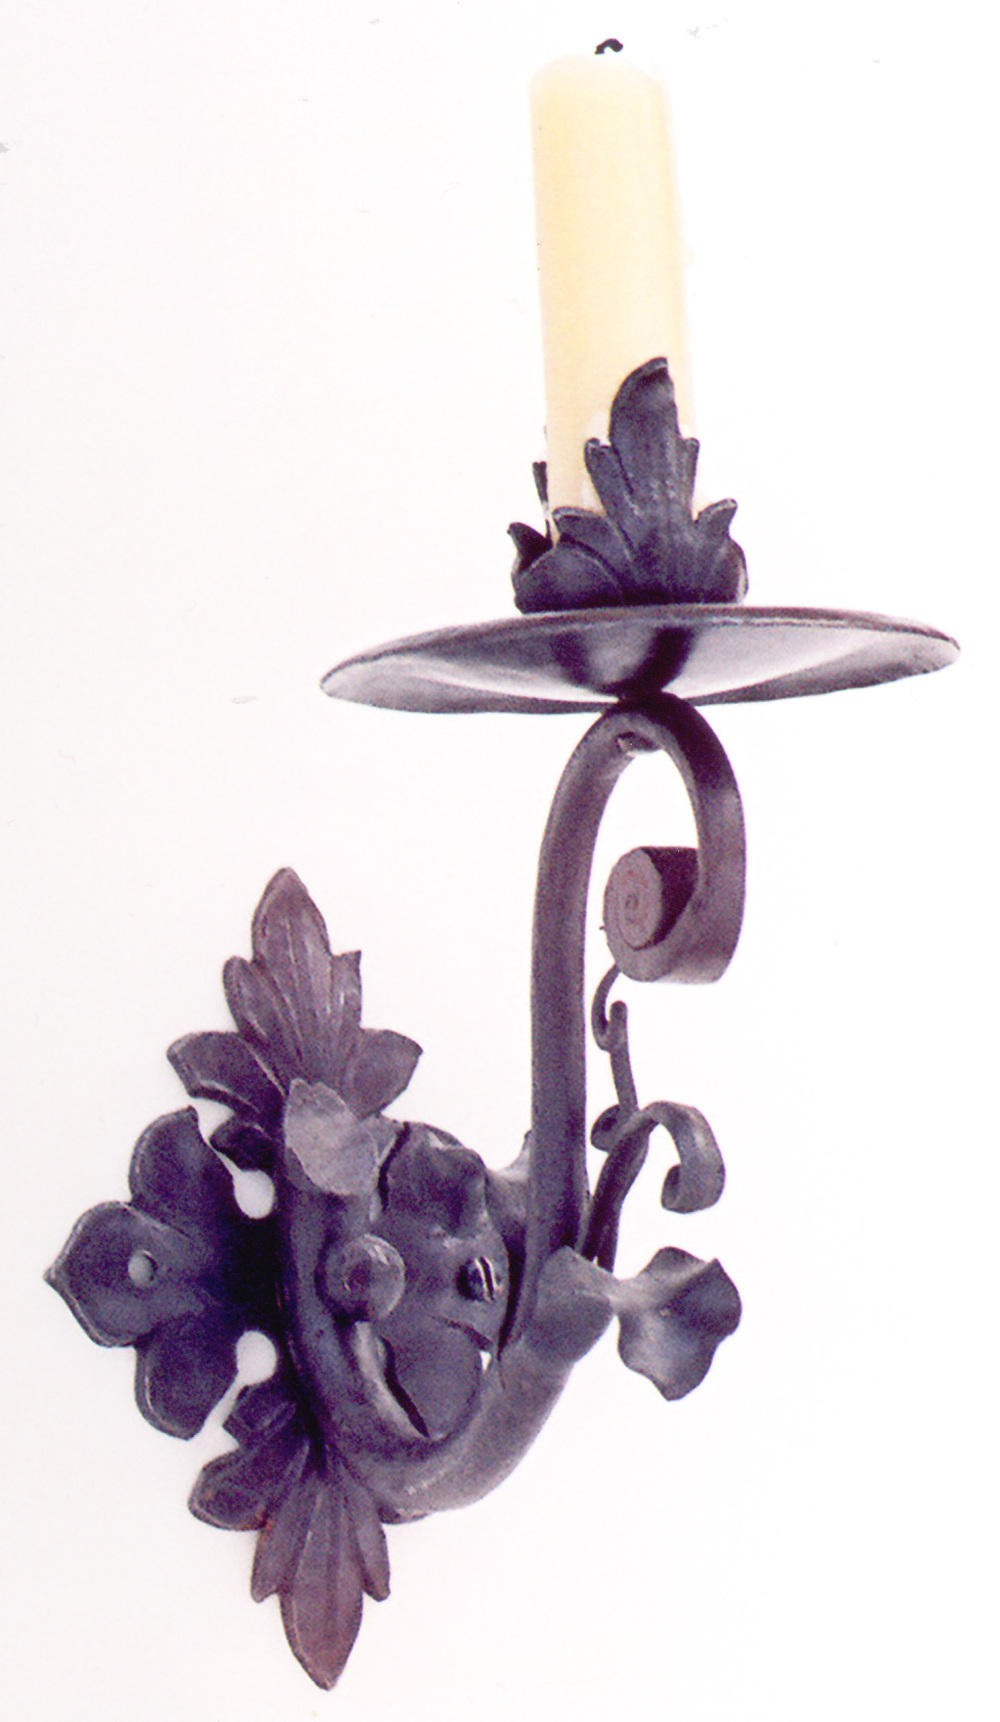 18th century style candle sconce by Dan Roesinger of Stark Ravens Studios